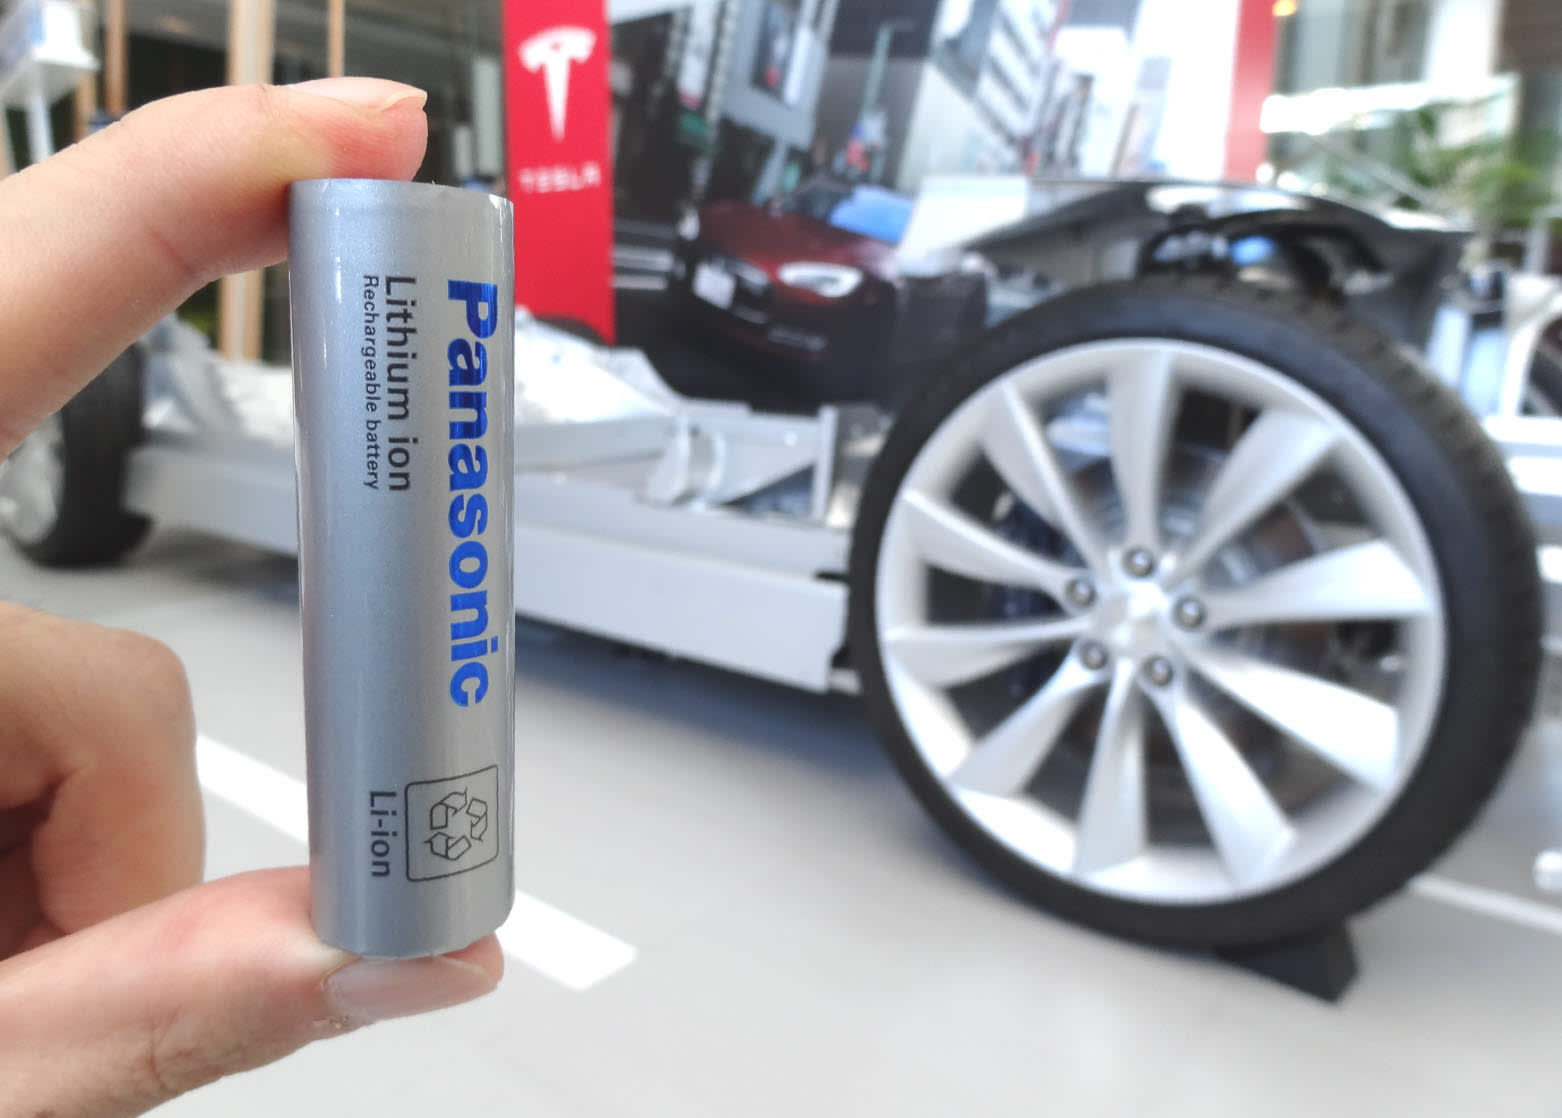 Tesla Latest 8-K Shows Entered 2020 Pricing Agreement With Panasonic On June 10th